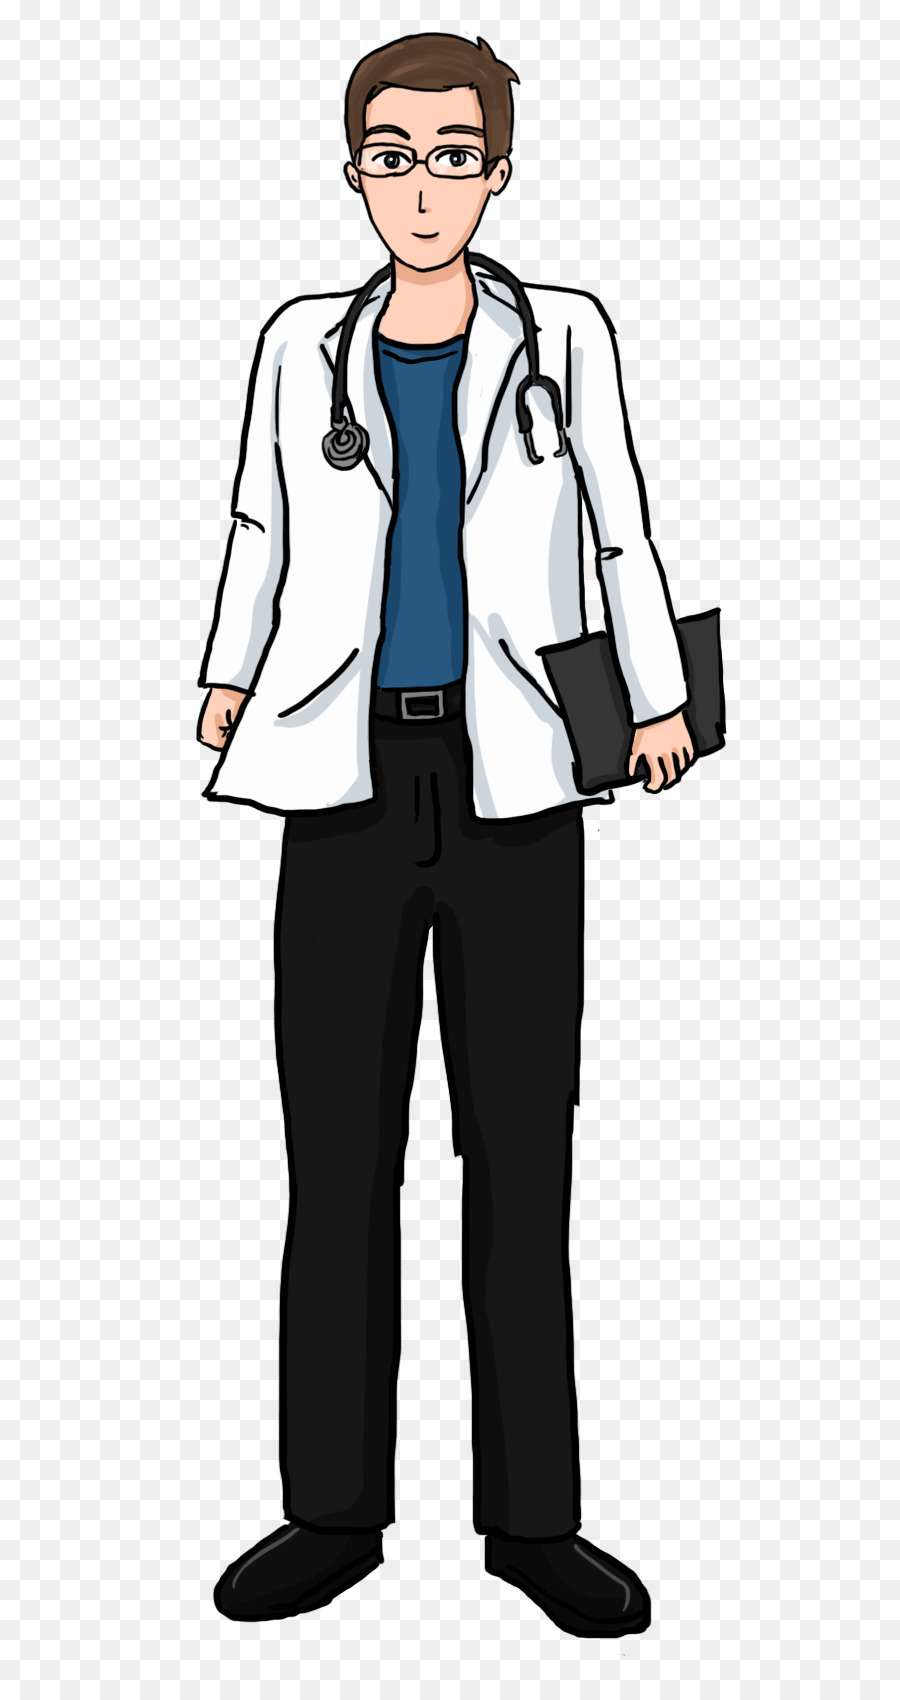 Doctor Cartoon png download.